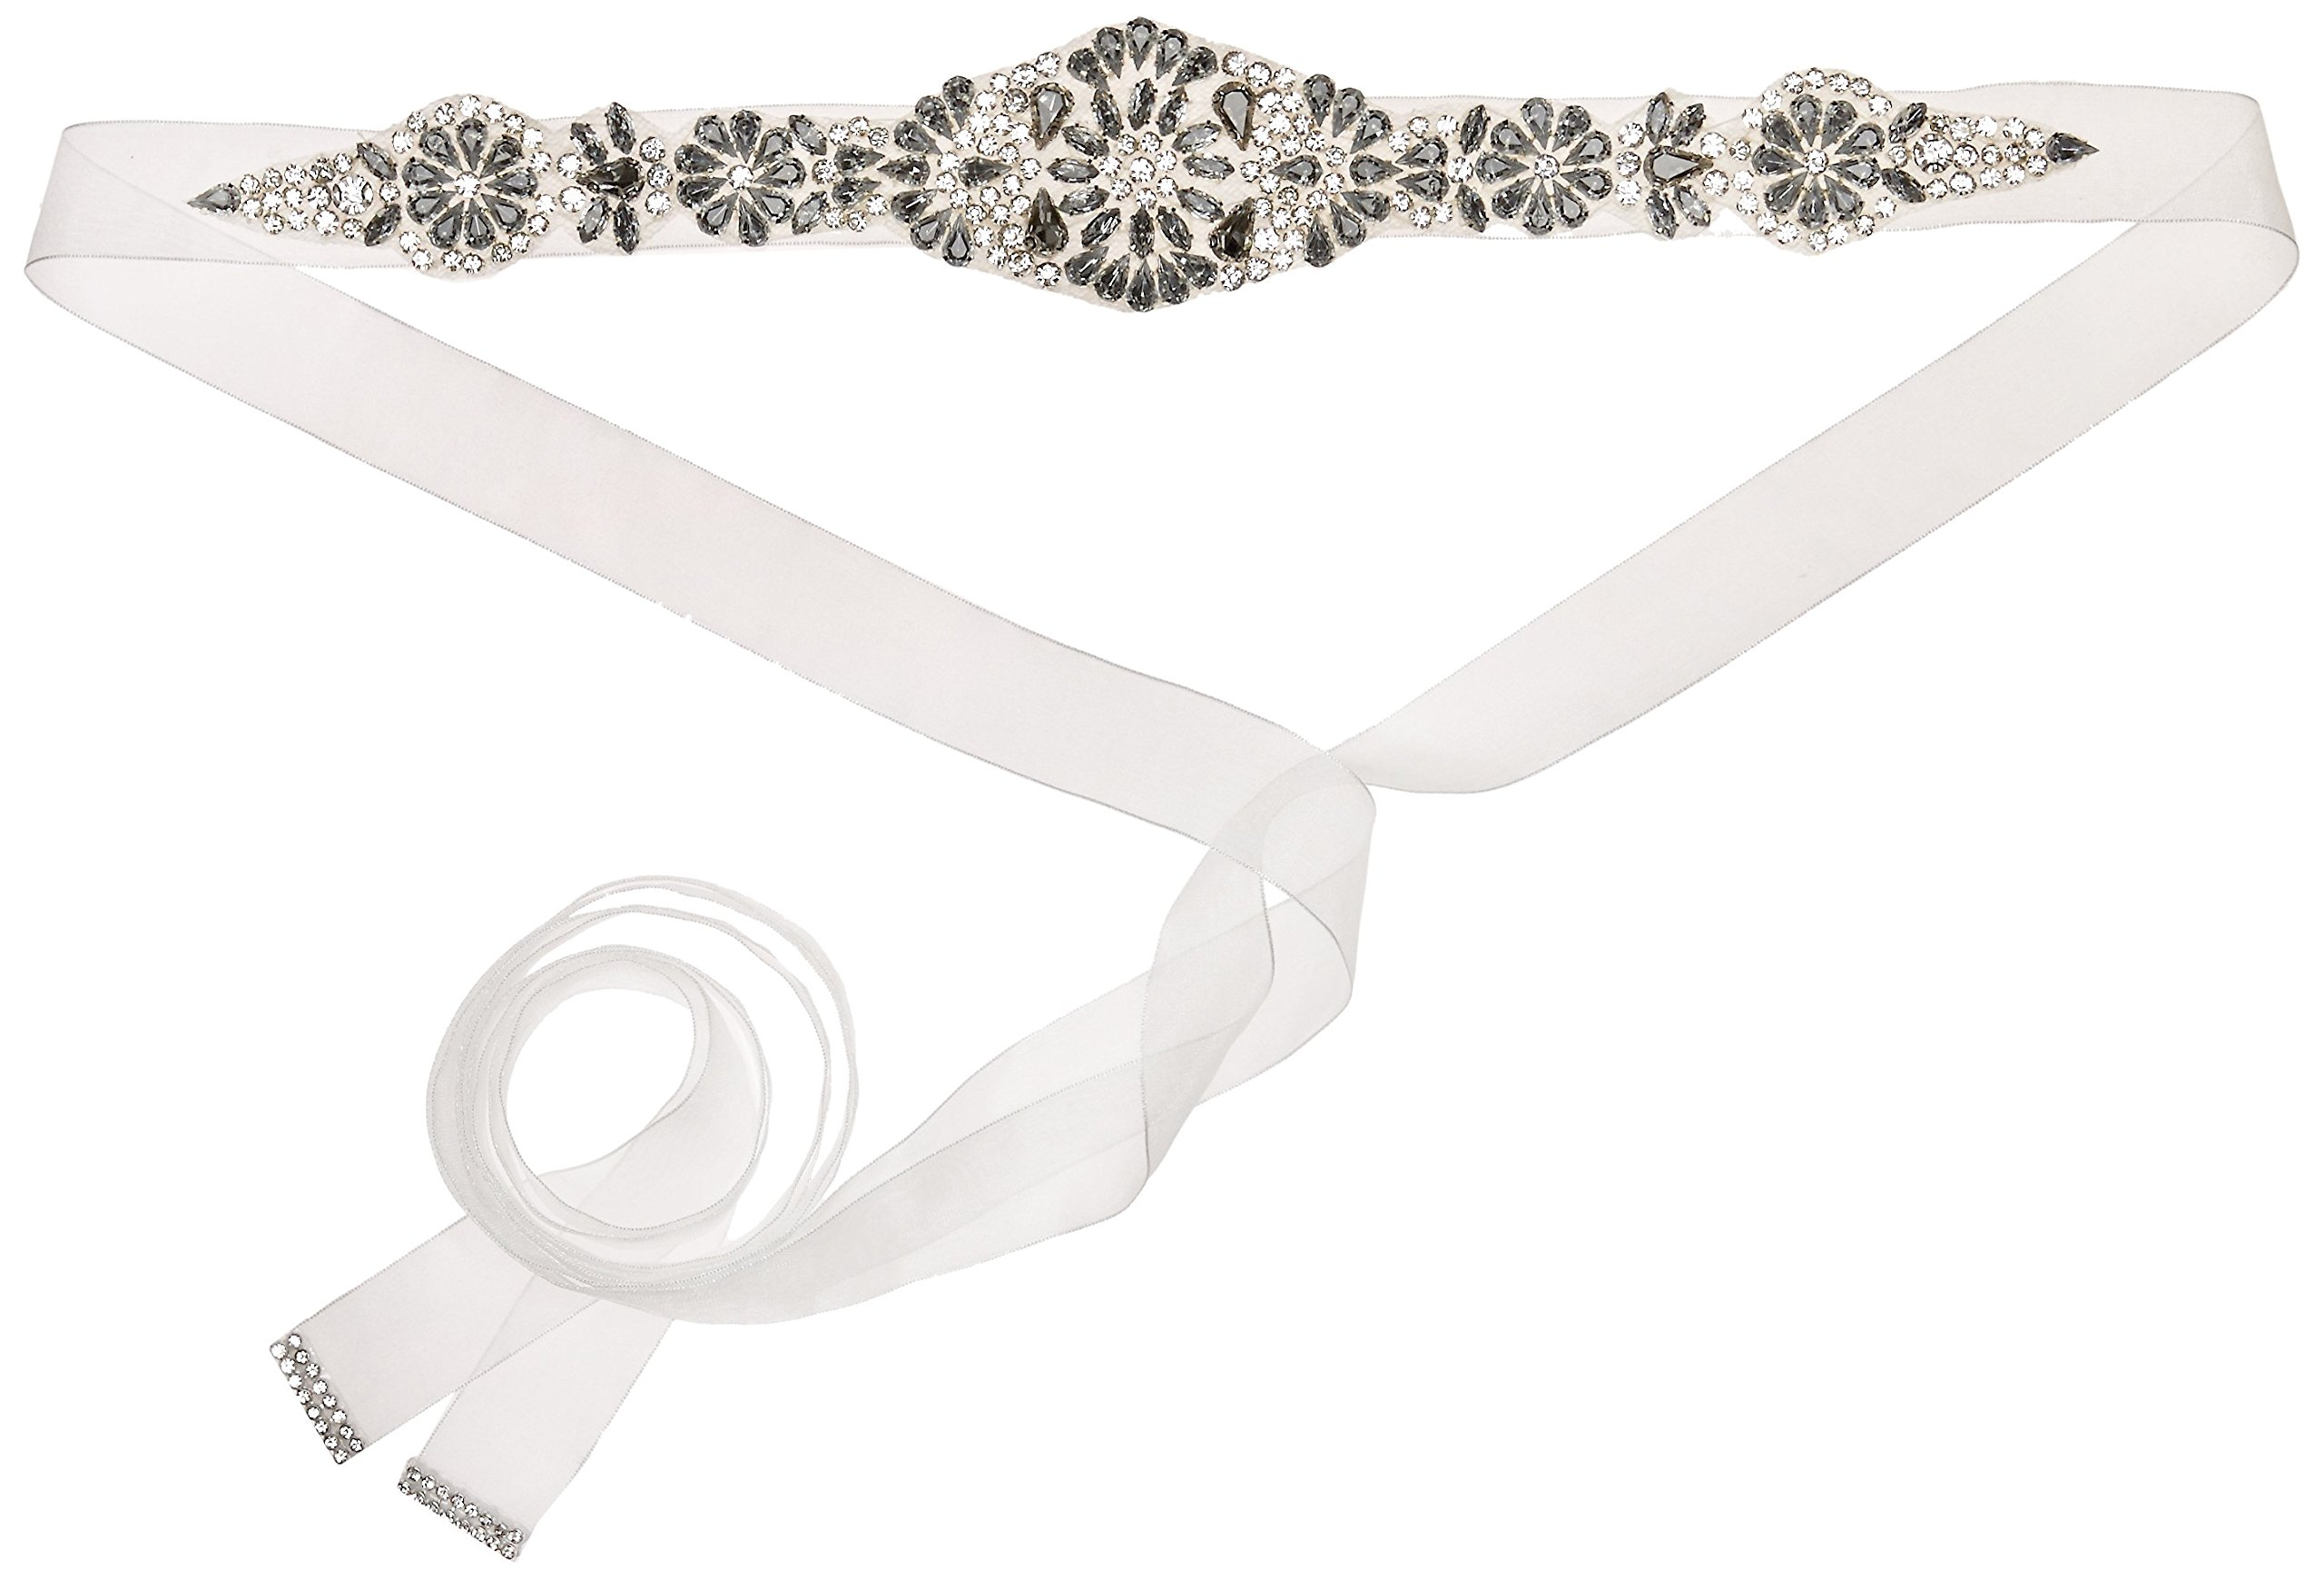 Nina Women's Aneesa Romantic Floral Embellished Organza Bridal Belt, Ivory, One Size